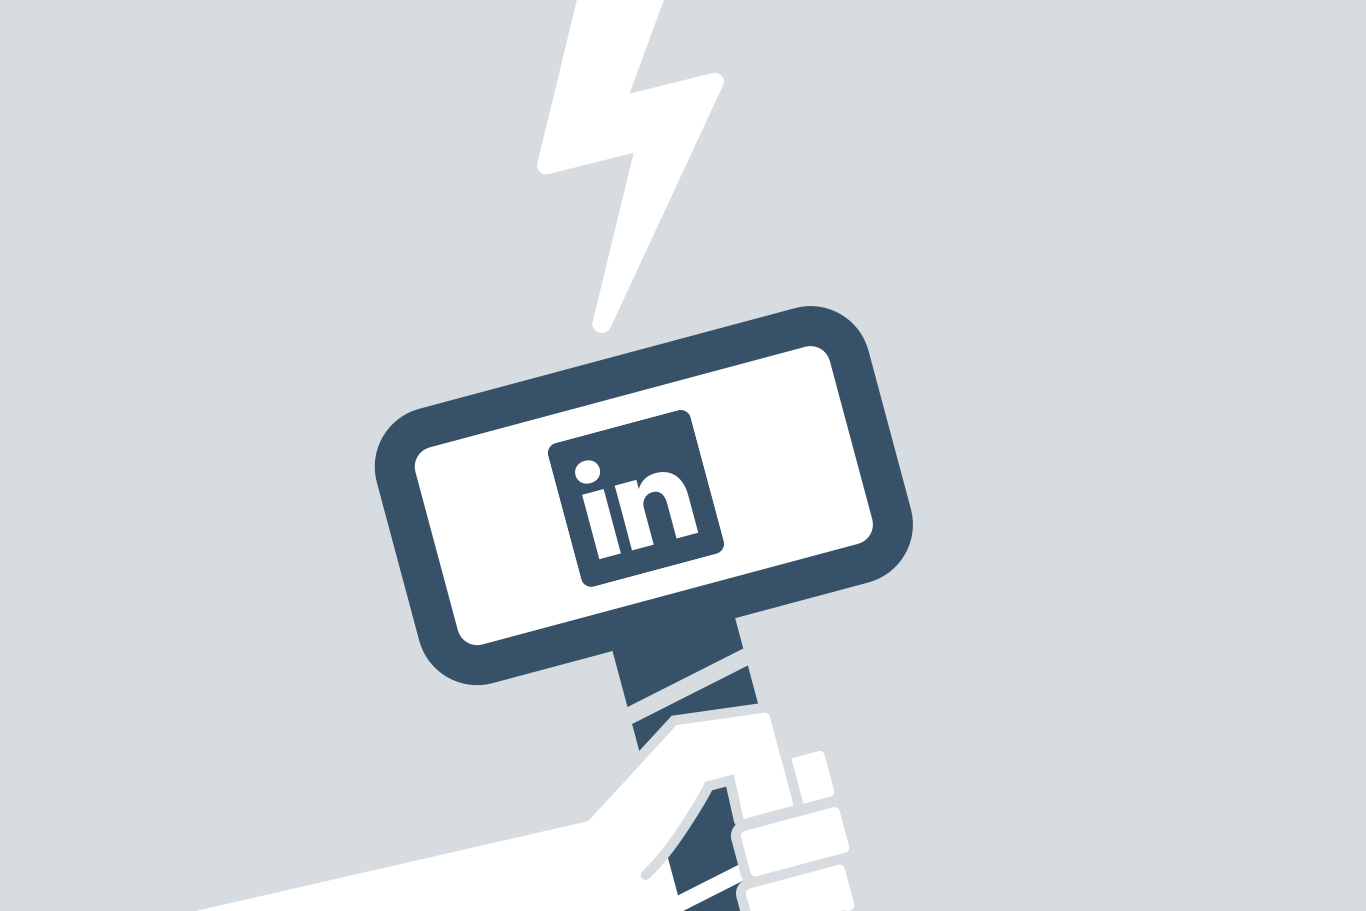 LinkedIn Powerful Social Media Tool Illustration